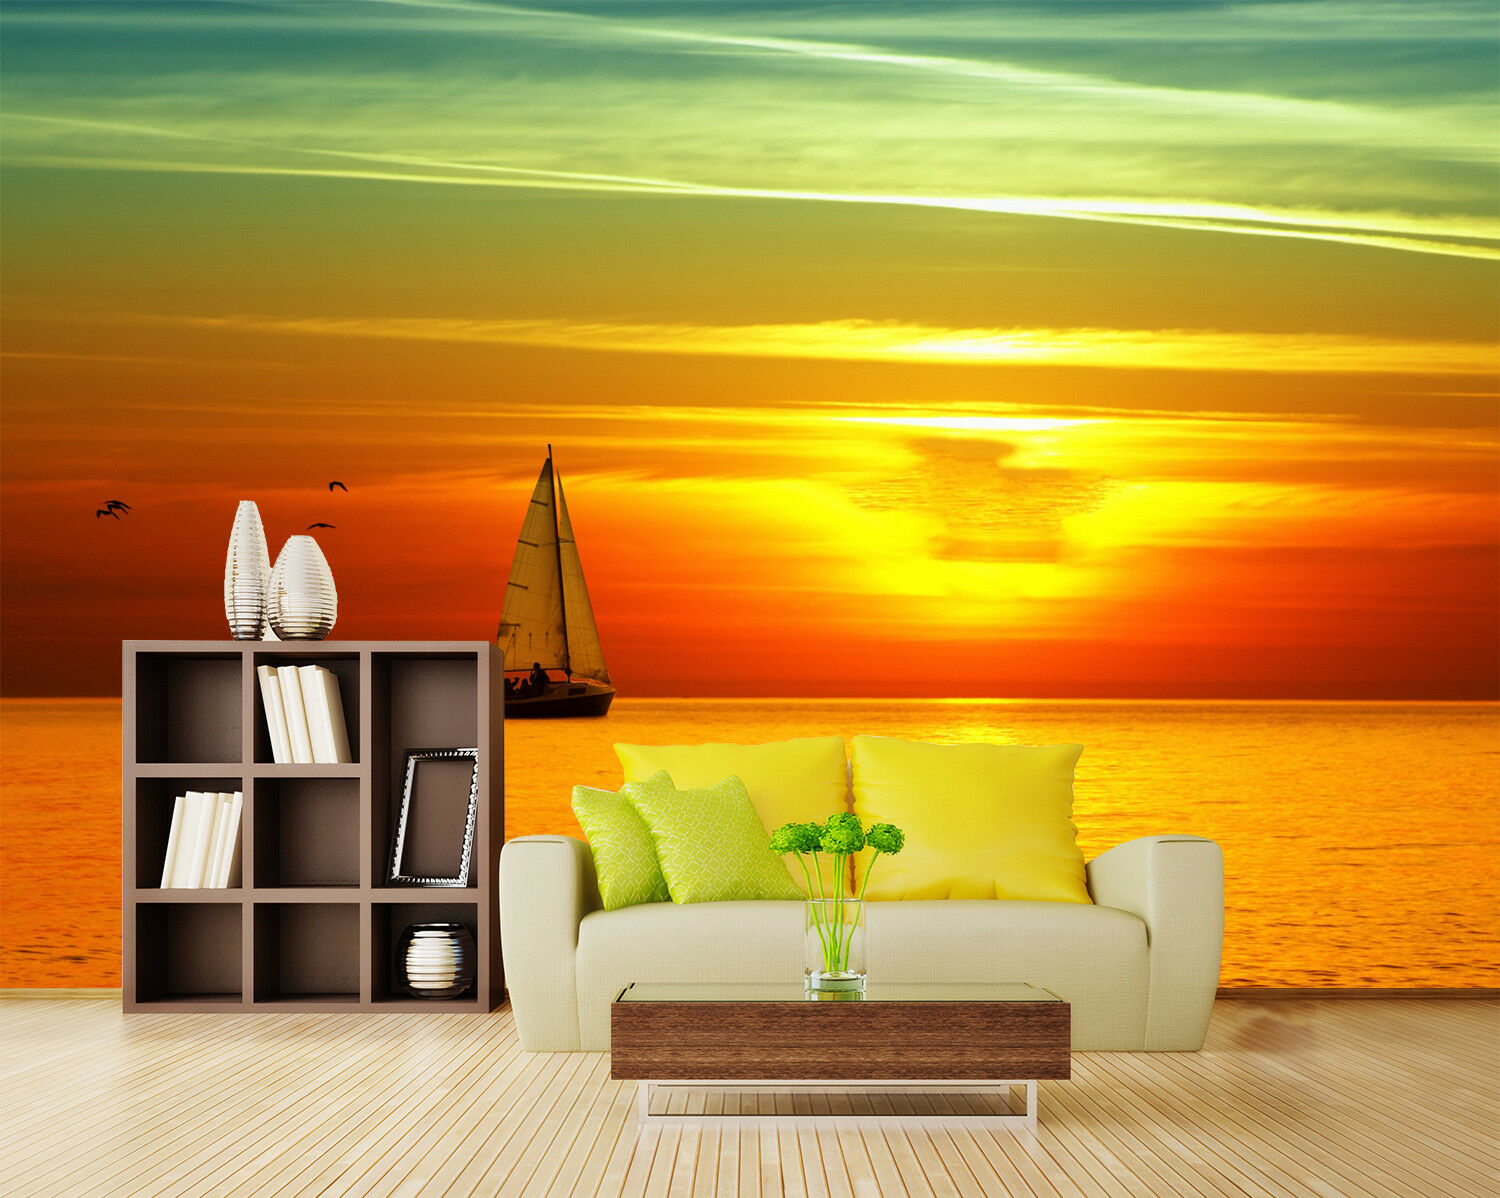 3D Boat Dusk Sky Wallpaper Murals Wall Print Wallpaper Mural AJ WALL AU Lemon